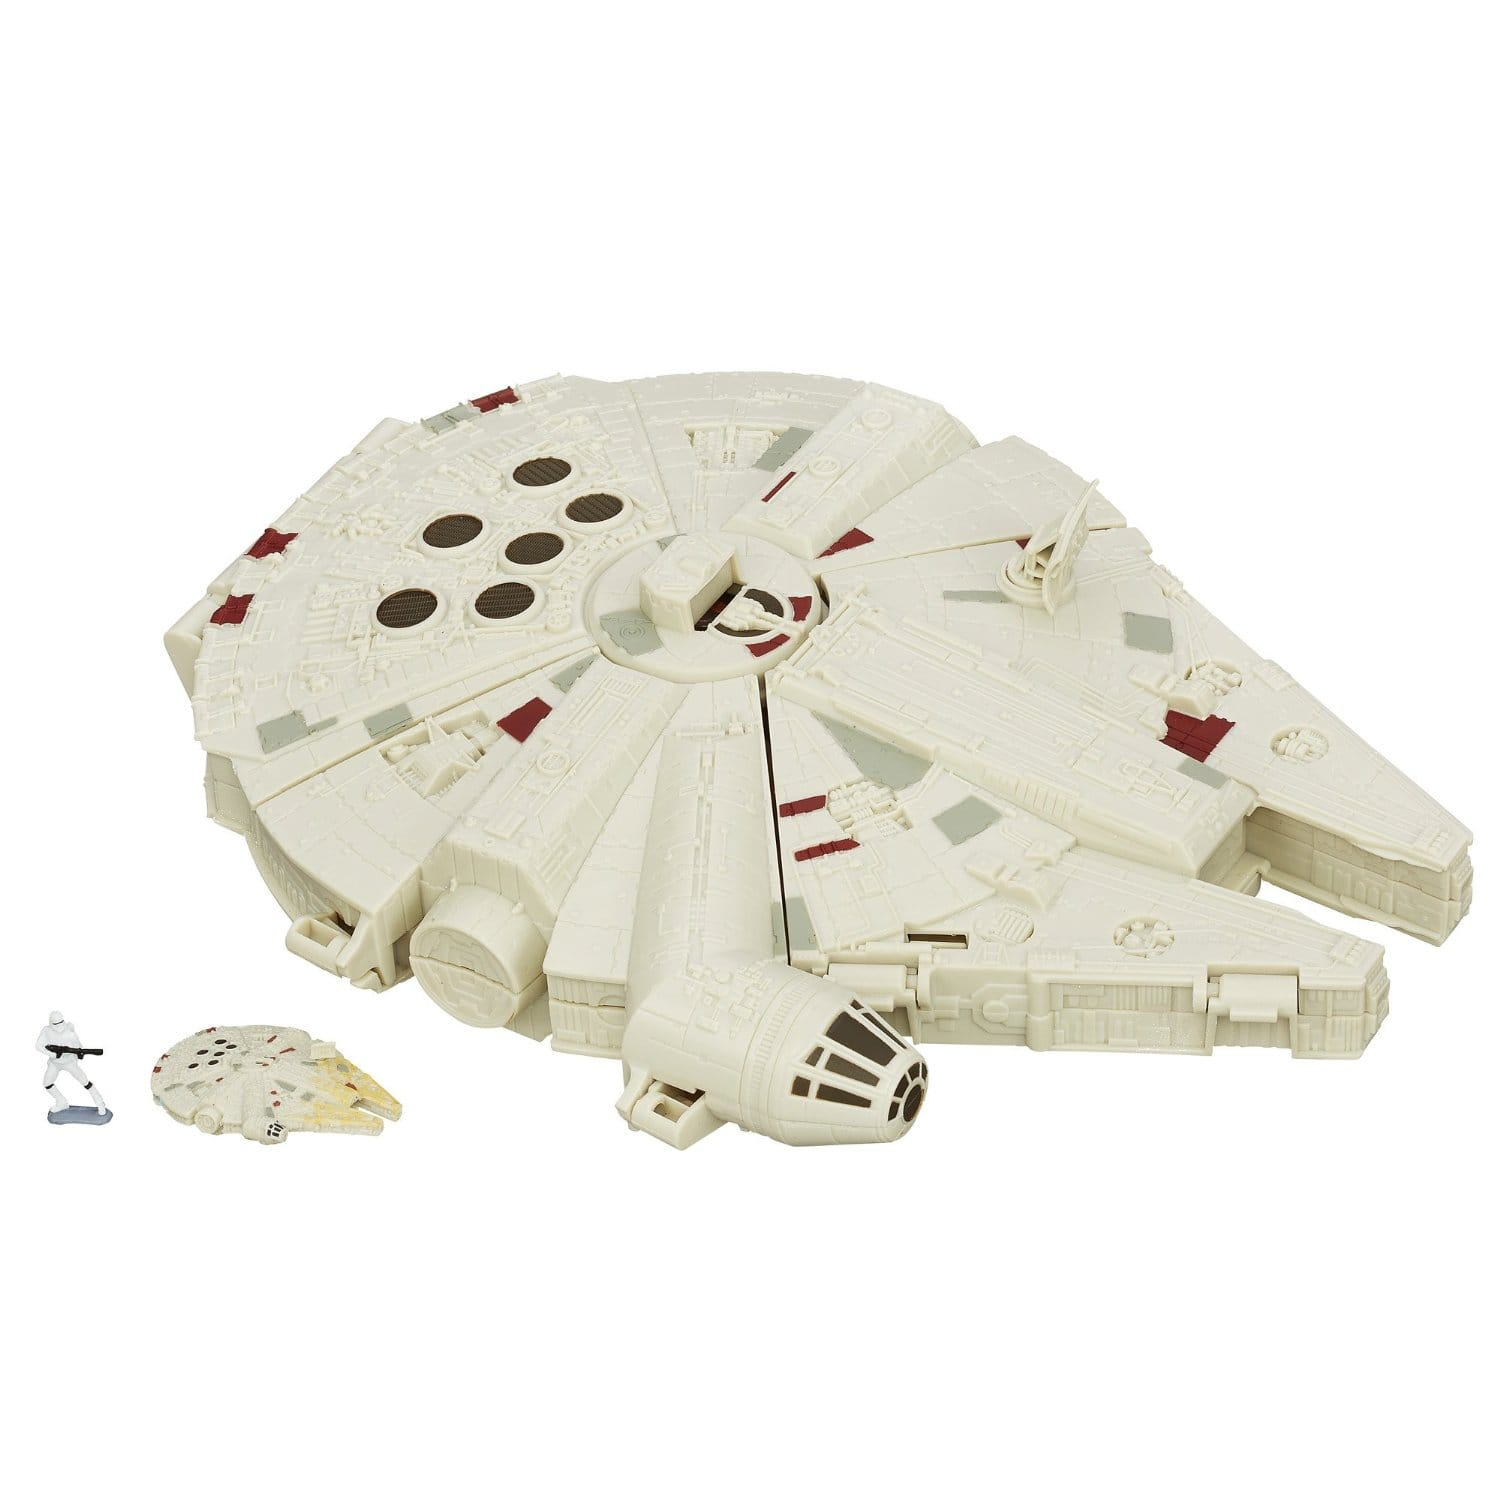 Star Wars The Force Awakens Micro Machines Millennium Falcon Playset $5 + Free Store Pickup @ Walmart